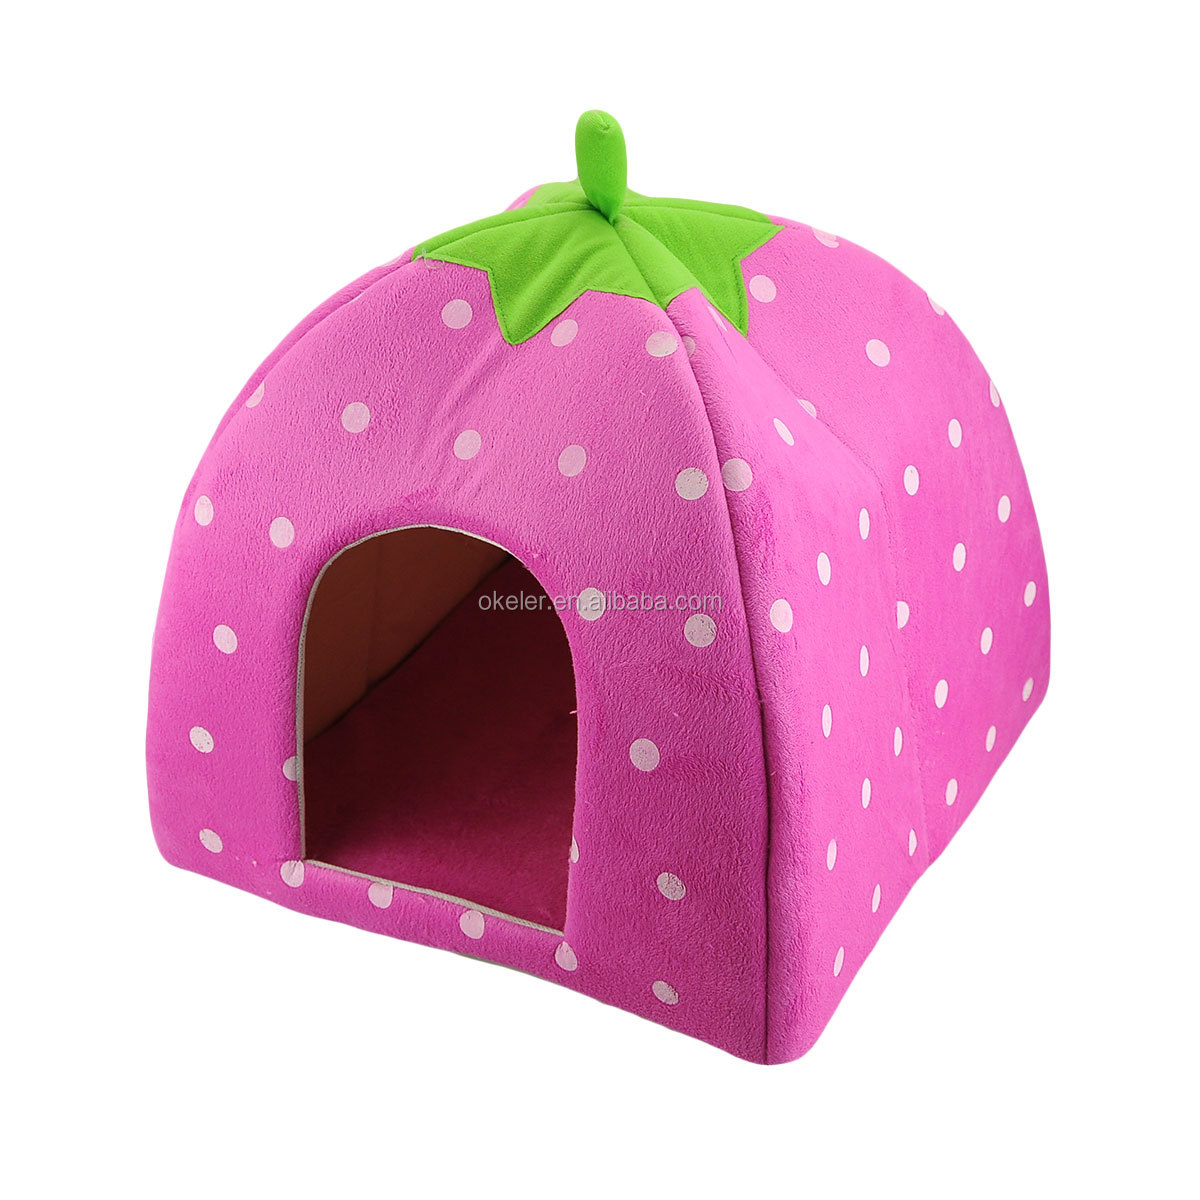 New Arrival Foldable Strawberry Shape Sponge Pet House dog Bed Cute Pink L